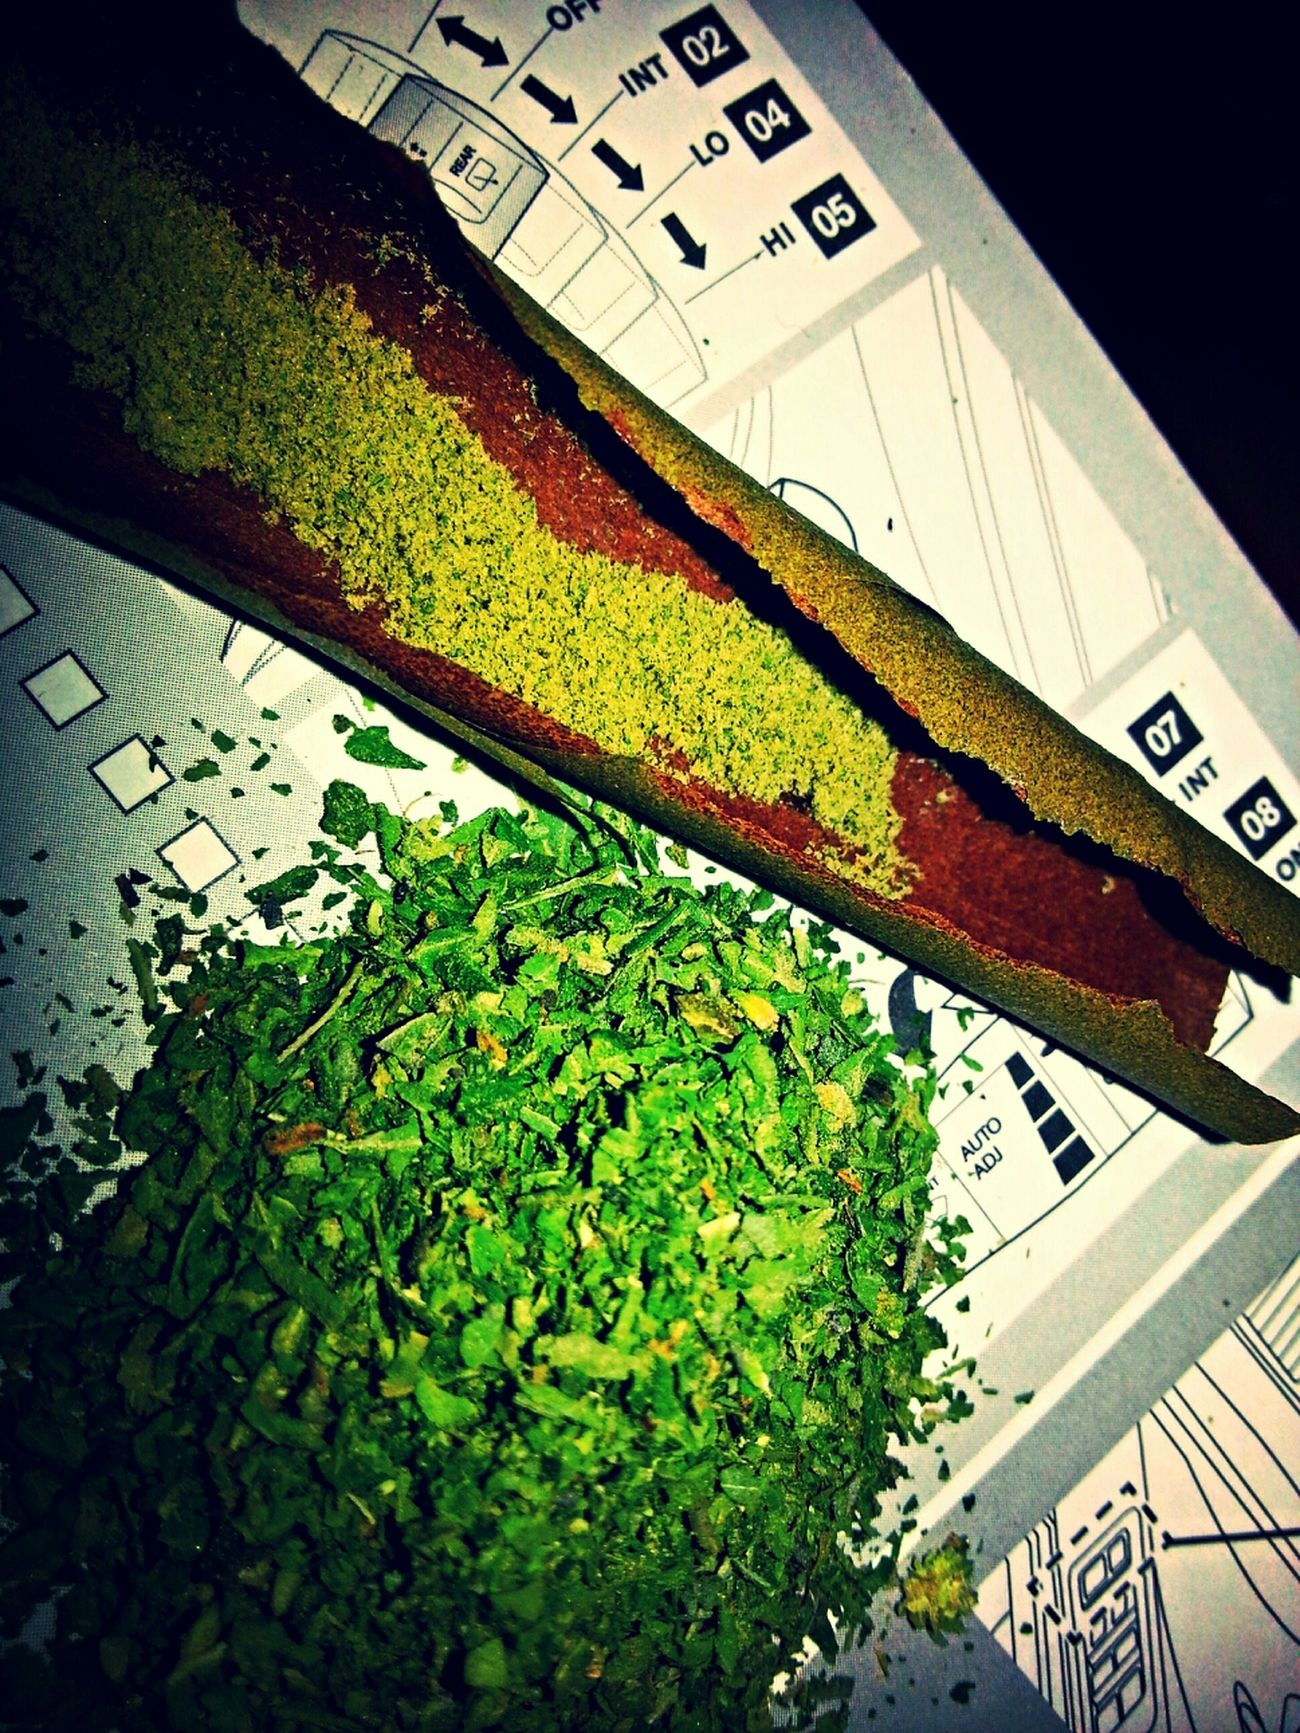 Good Morning! Wakenbake Blunts Cannabis Keif pic by me